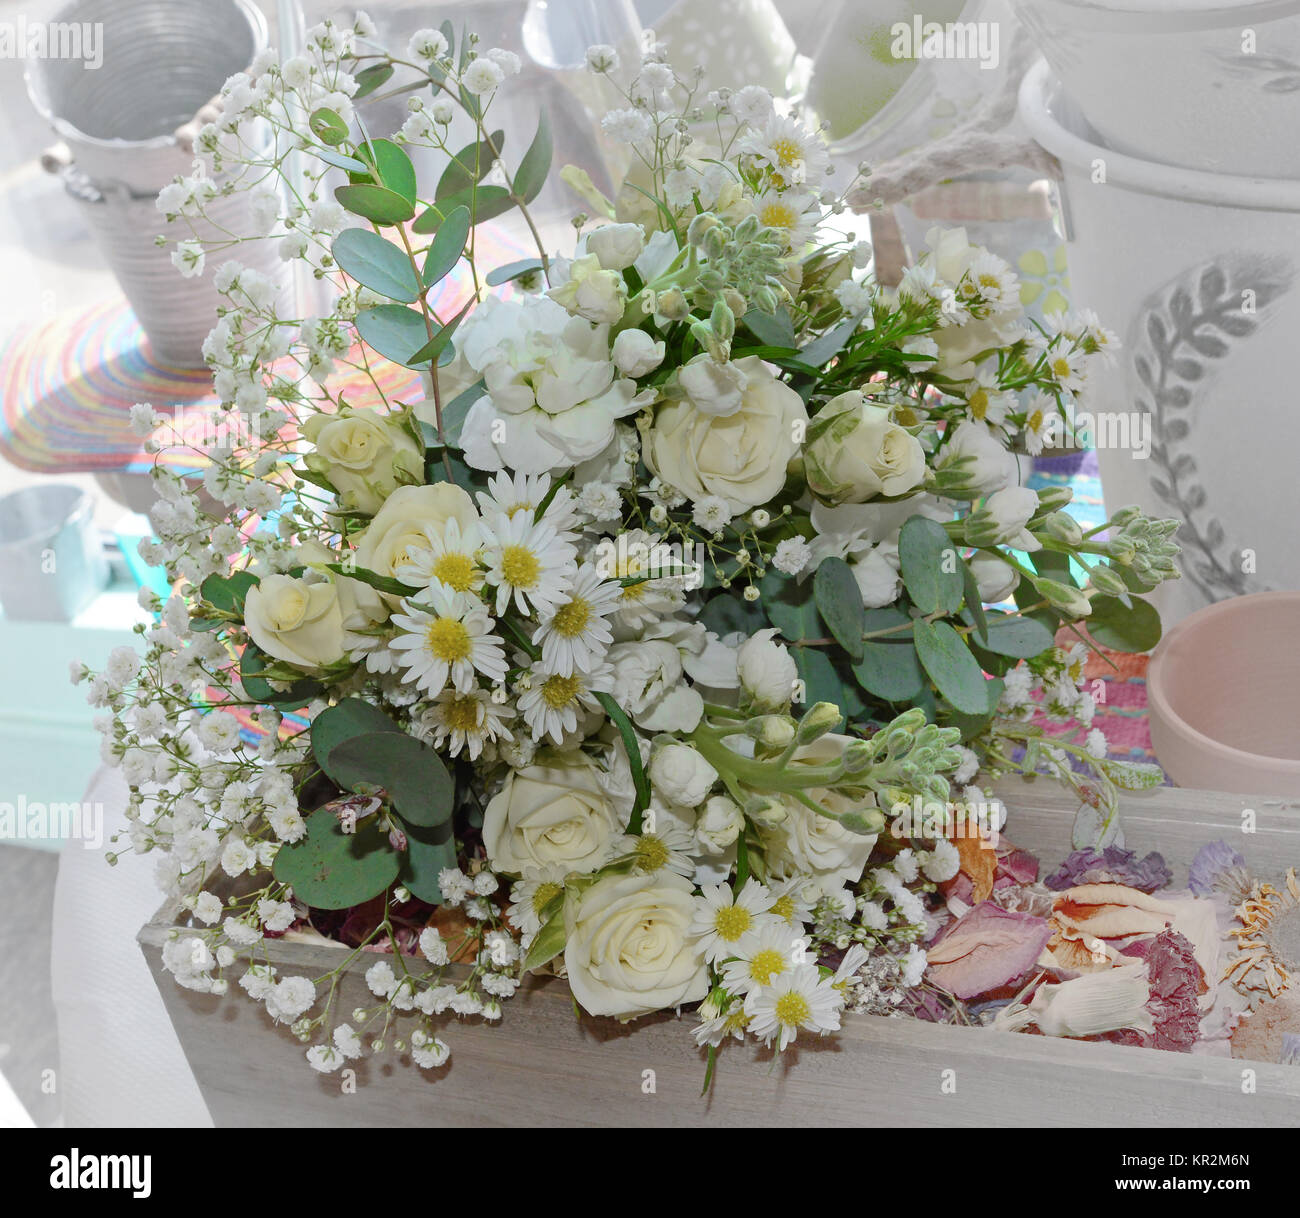 Photo Of A Flowing All White Bridal Bouquet With Hydrangea Roses Stock Photo Alamy